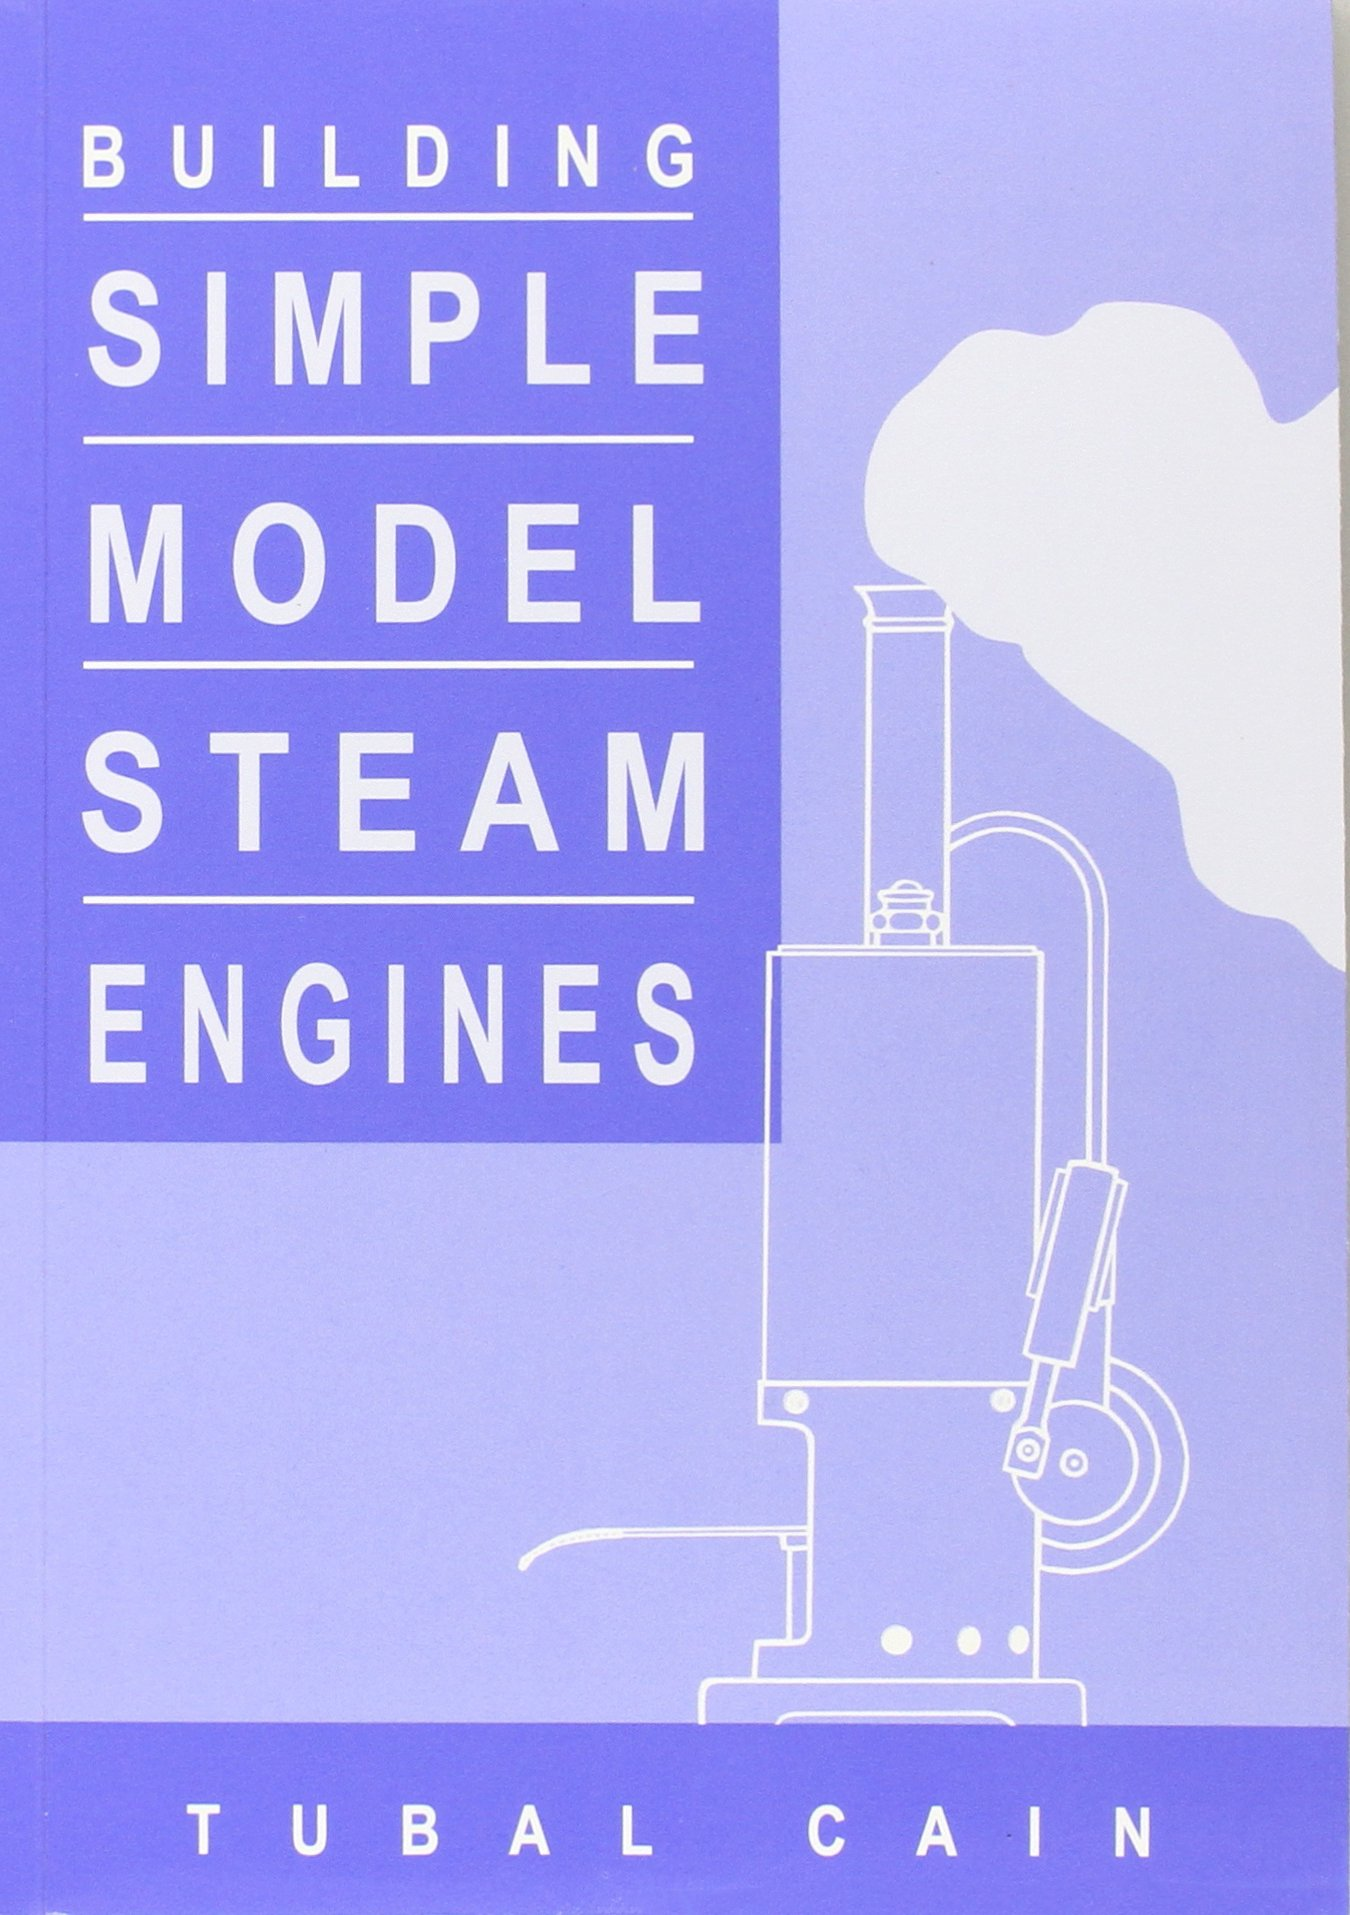 Building Simple Model Steam Engines ISBN-13 9781854861047